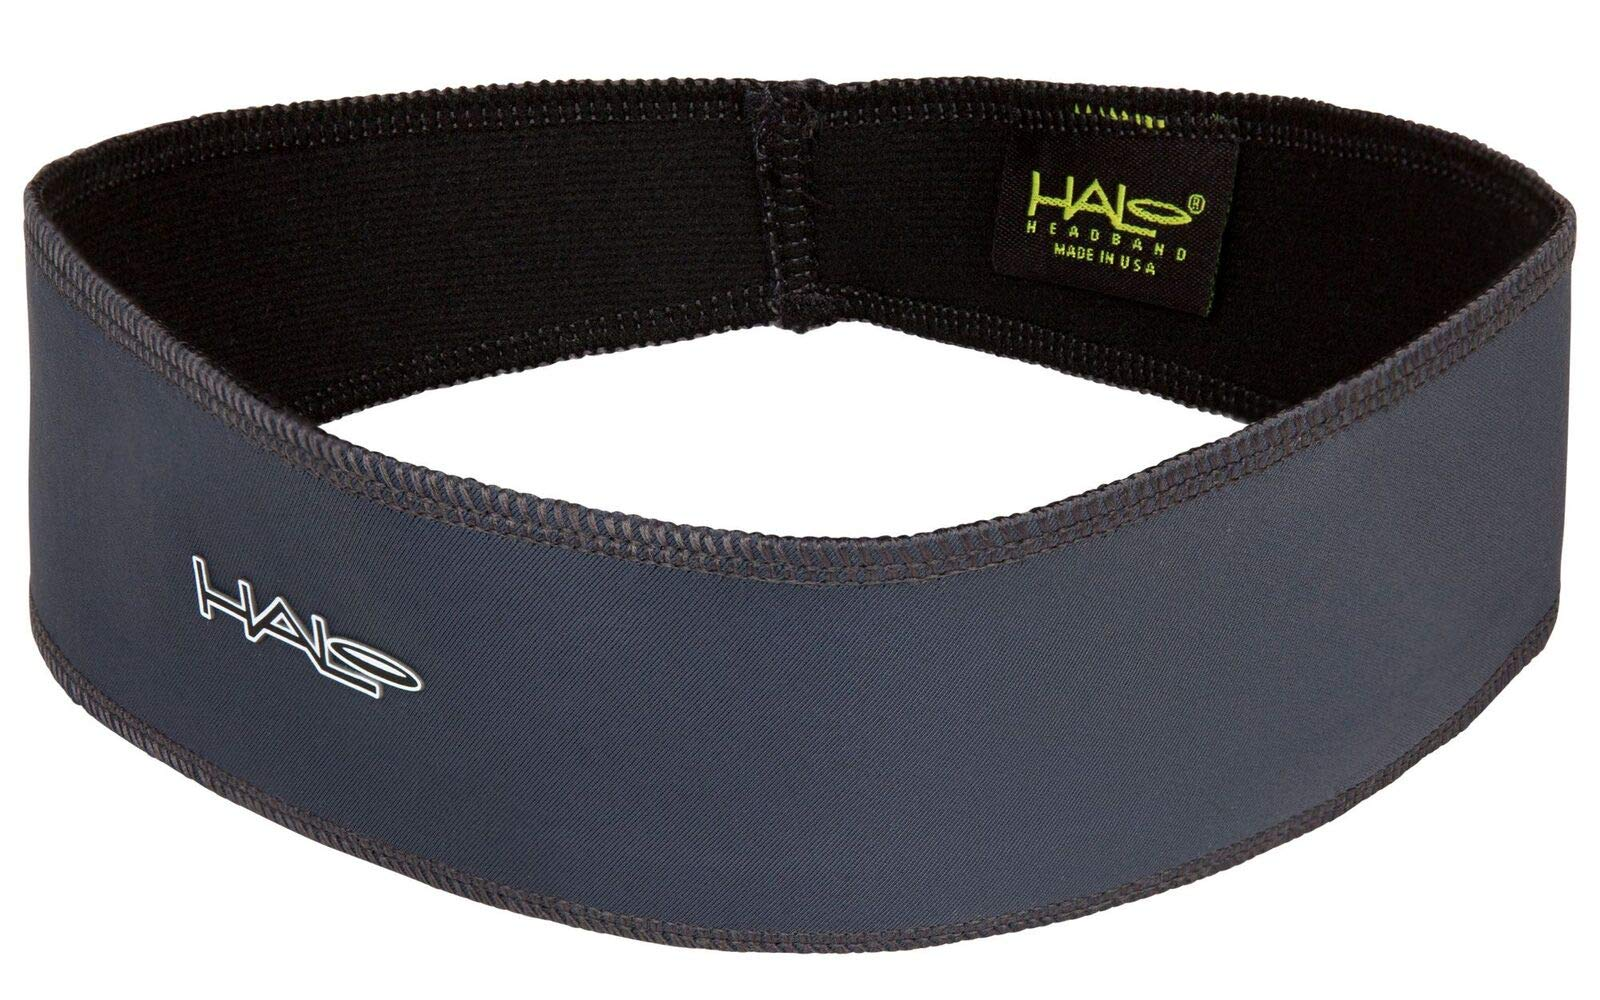 Halo II Headband Sweatband Pullover, Charcoal by Halo Headbands